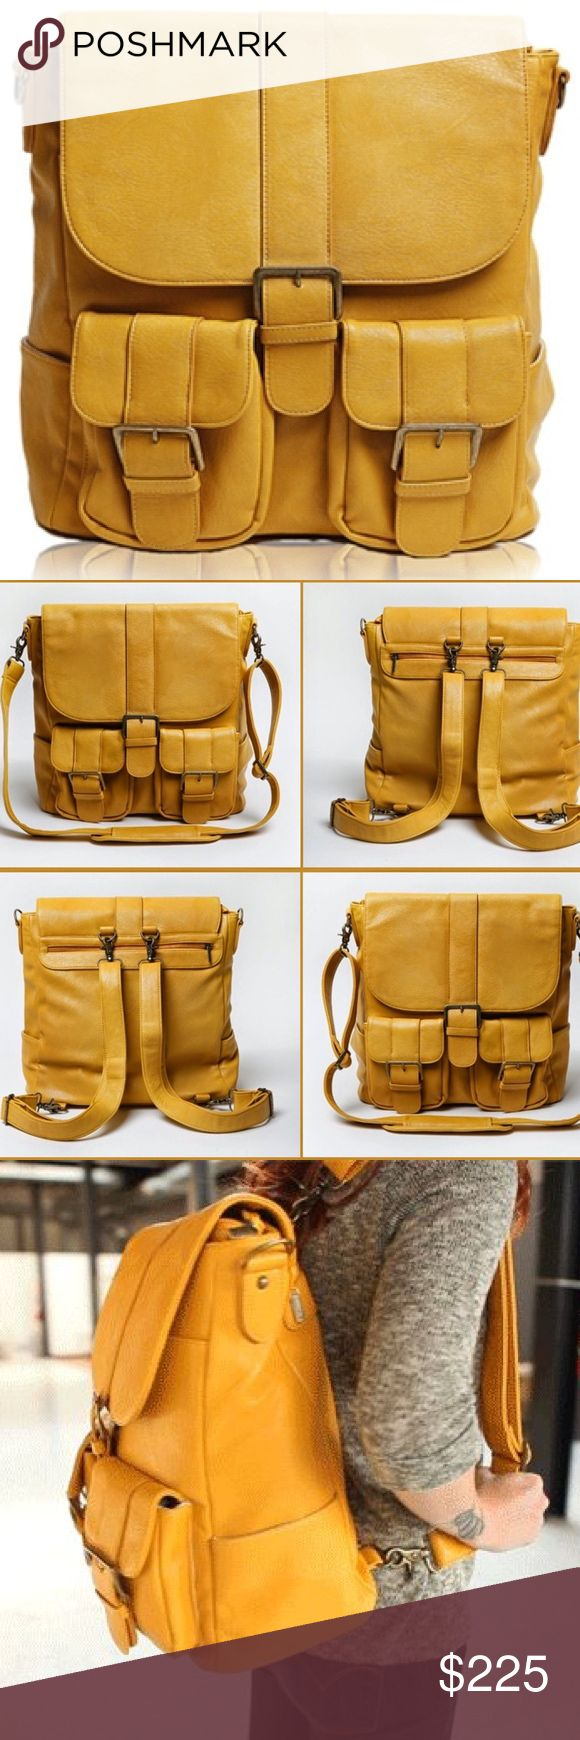 """Rare Epiphanie Brooklyn Camera Bag Backpack Gorgeous mustard Brooklyn camera bag/backpack from Epiphanie combines function and style. Can carry a DSLR w/attached lens, 2 extra lenses, flash w/battery pack, accessories and a 15"""" laptop and/or tablet. Has plenty of pockets and 4 interior panels allow you to configure the bag to your liking. Or, remove all panels for one large storage space. Includes 2 detachable shoulder straps + detachable cross-body strap. Made from water-resistant synthetic…"""